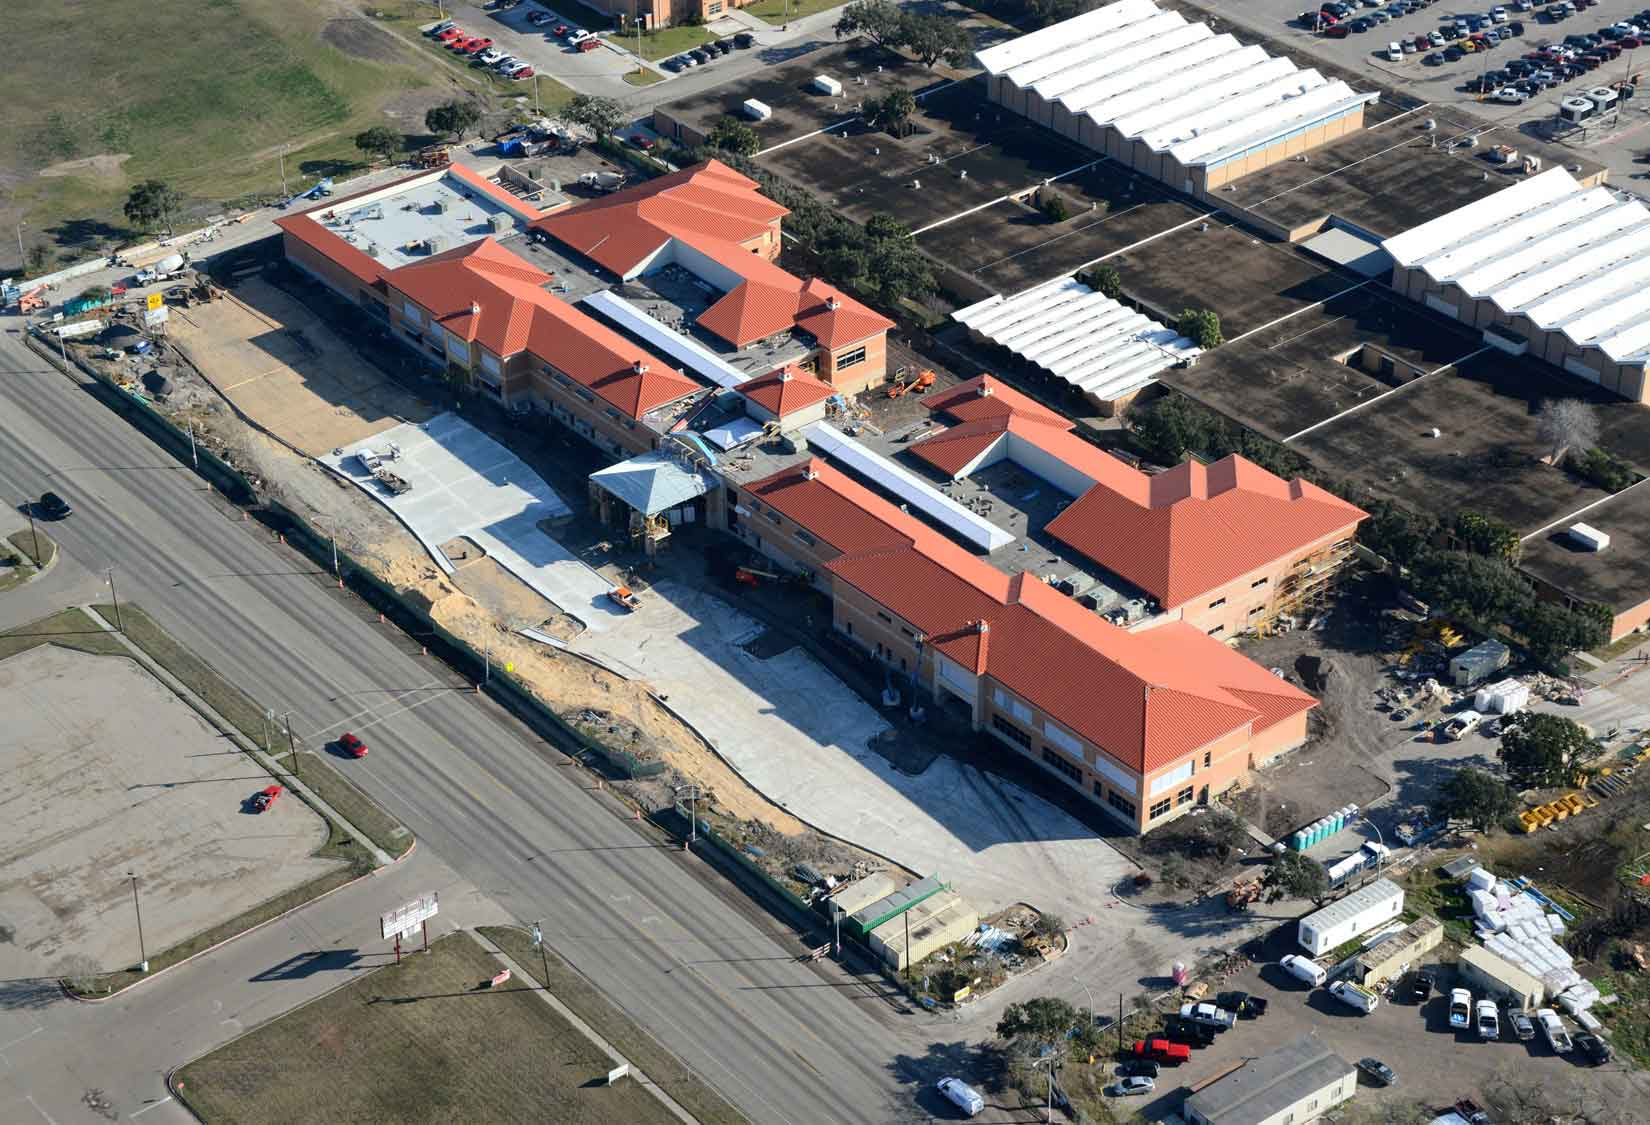 H.M. King High School Aerial View